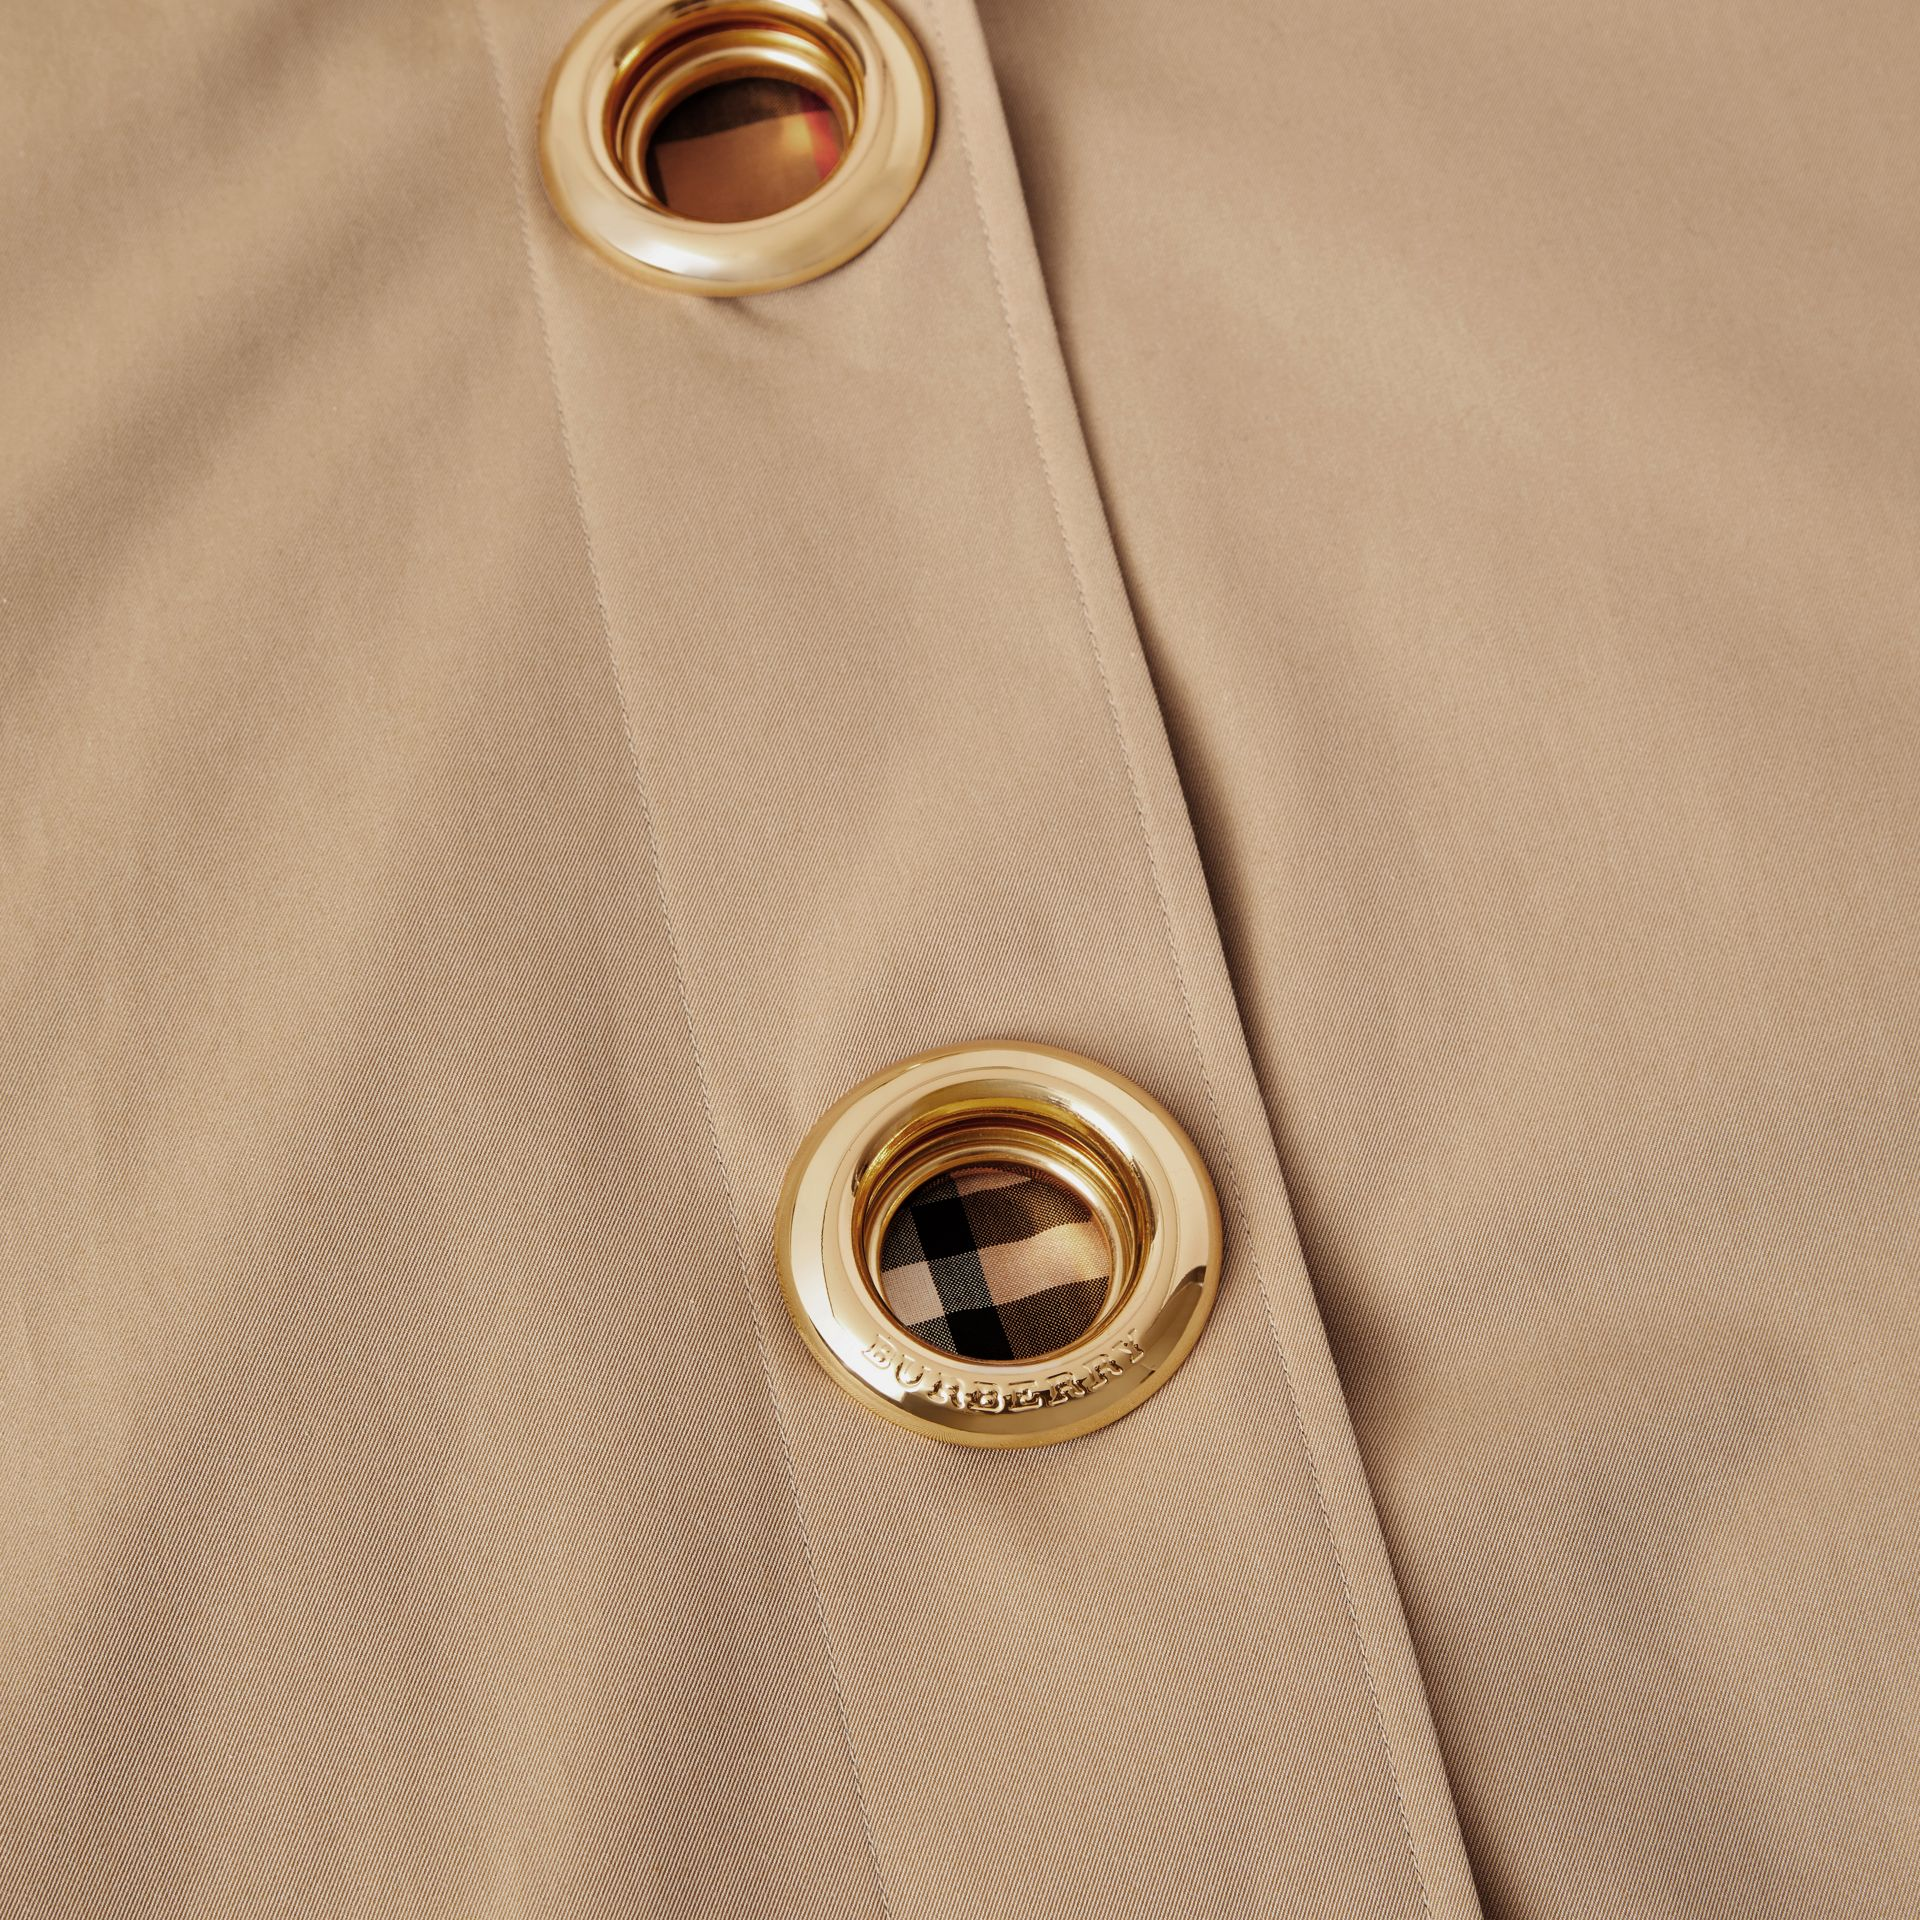 Grommet Detail Cotton Gabardine Car Coat in Honey - Women | Burberry Singapore - gallery image 4